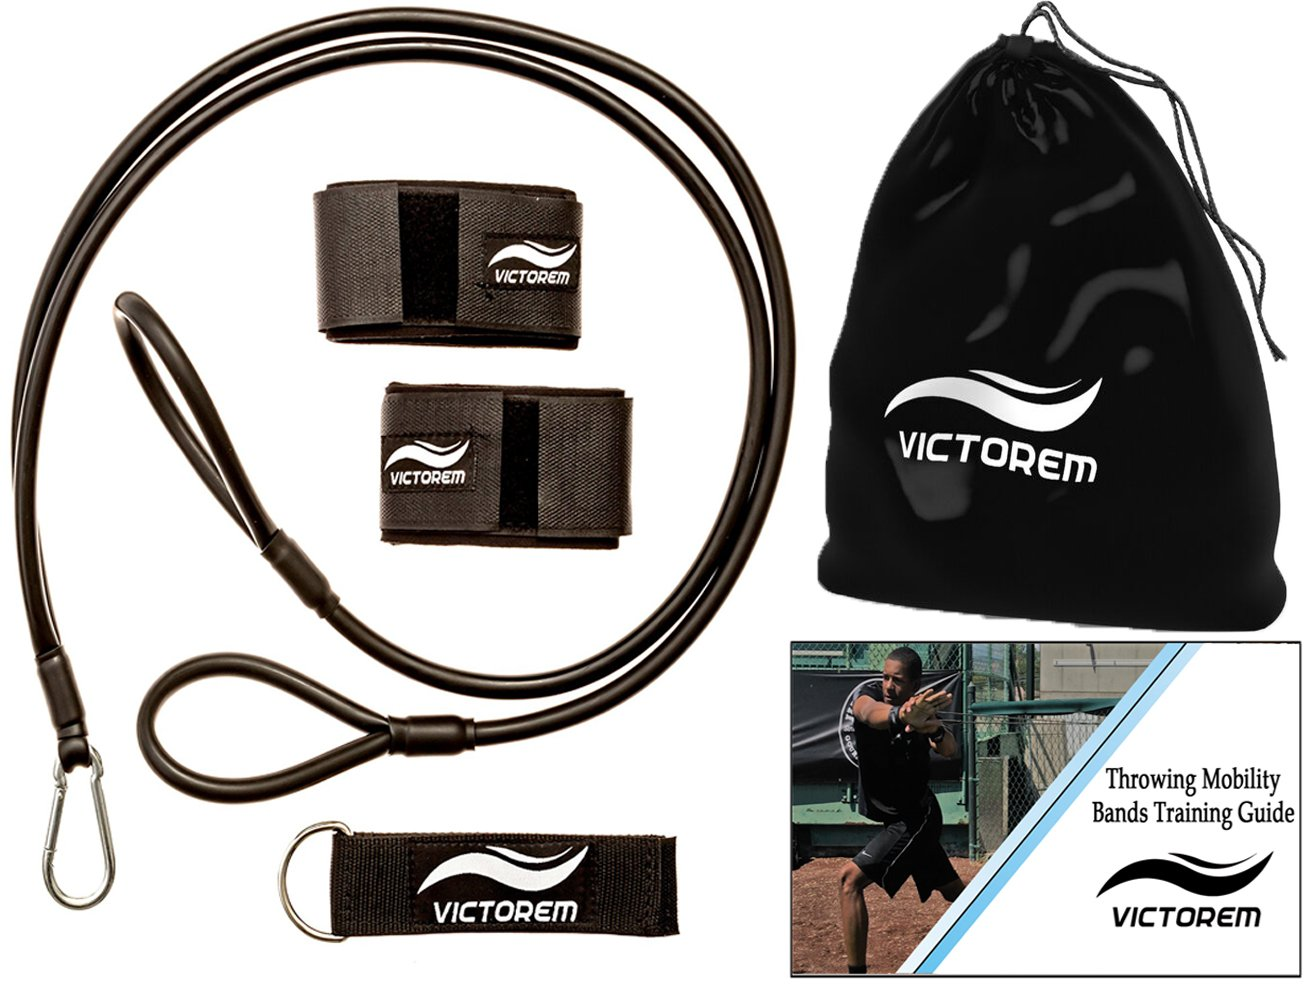 VICTOREM Throwing Mobility Bands – Bonus Carrying Bag, Connecting Strap, Workout Guide – Baseball, Softball, Quarterback, Exercise Resistance Bands – Arm Strength, Conditioning, Warmup - PT